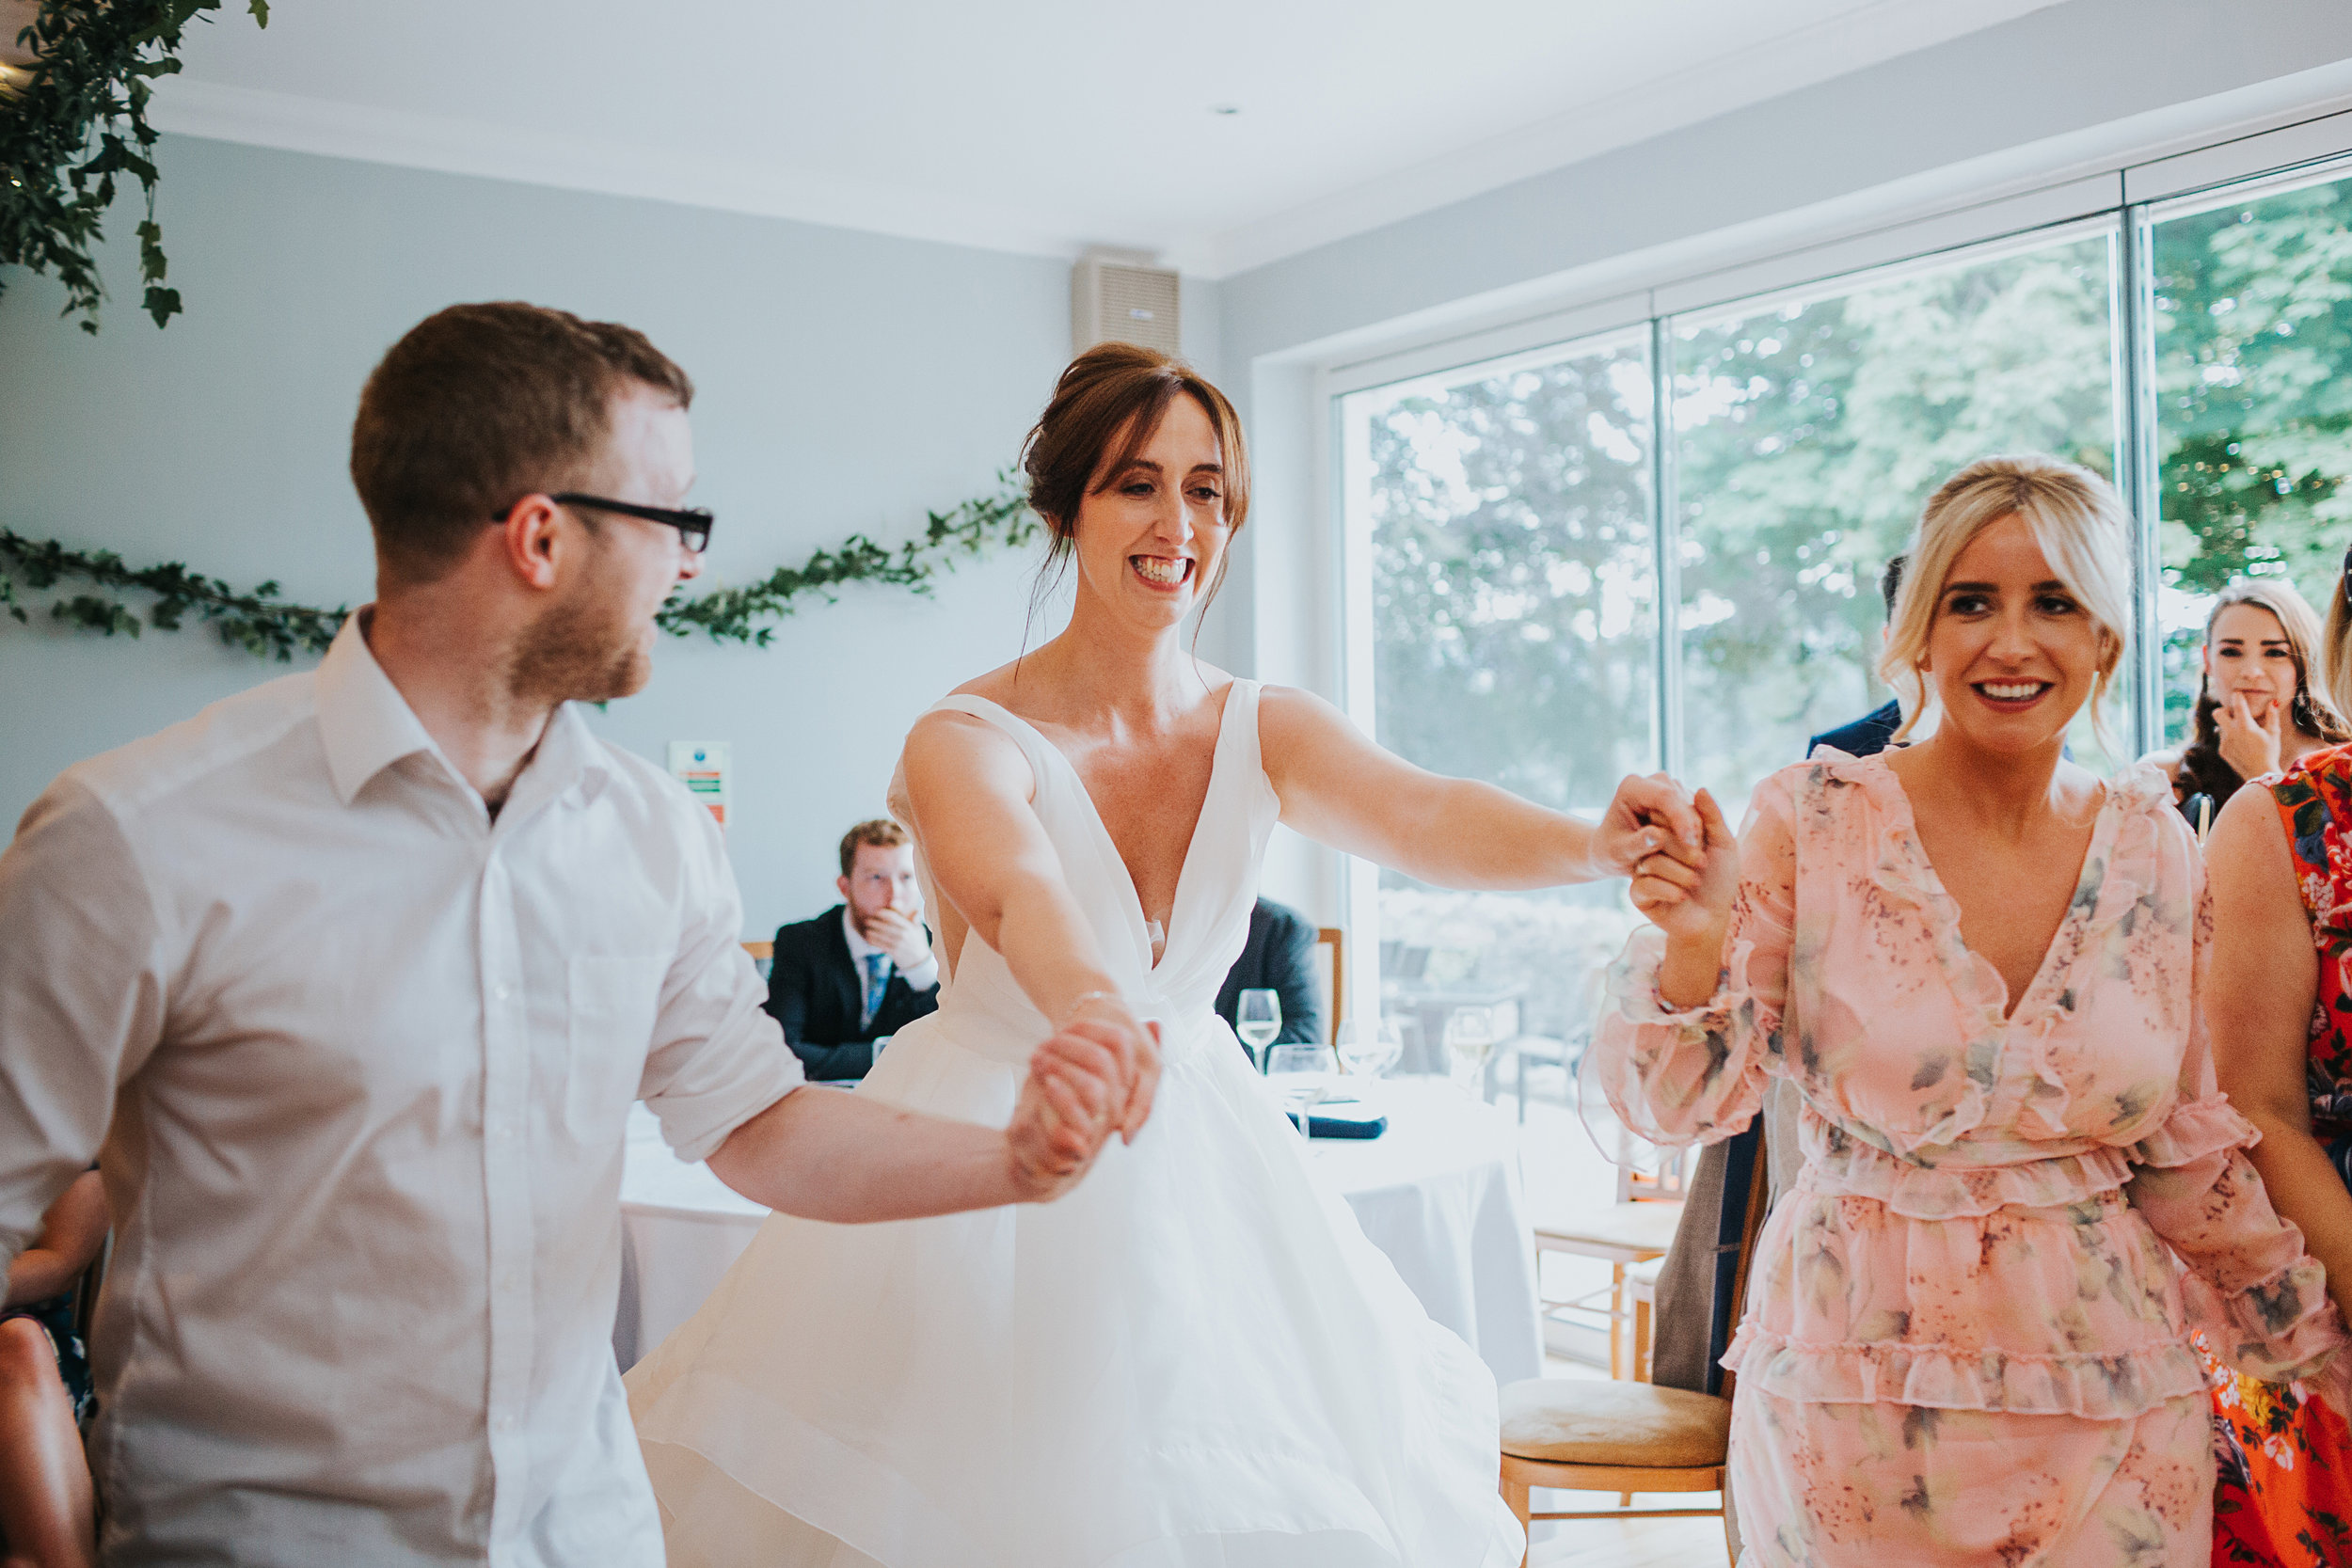 Bride dancing with her guests.